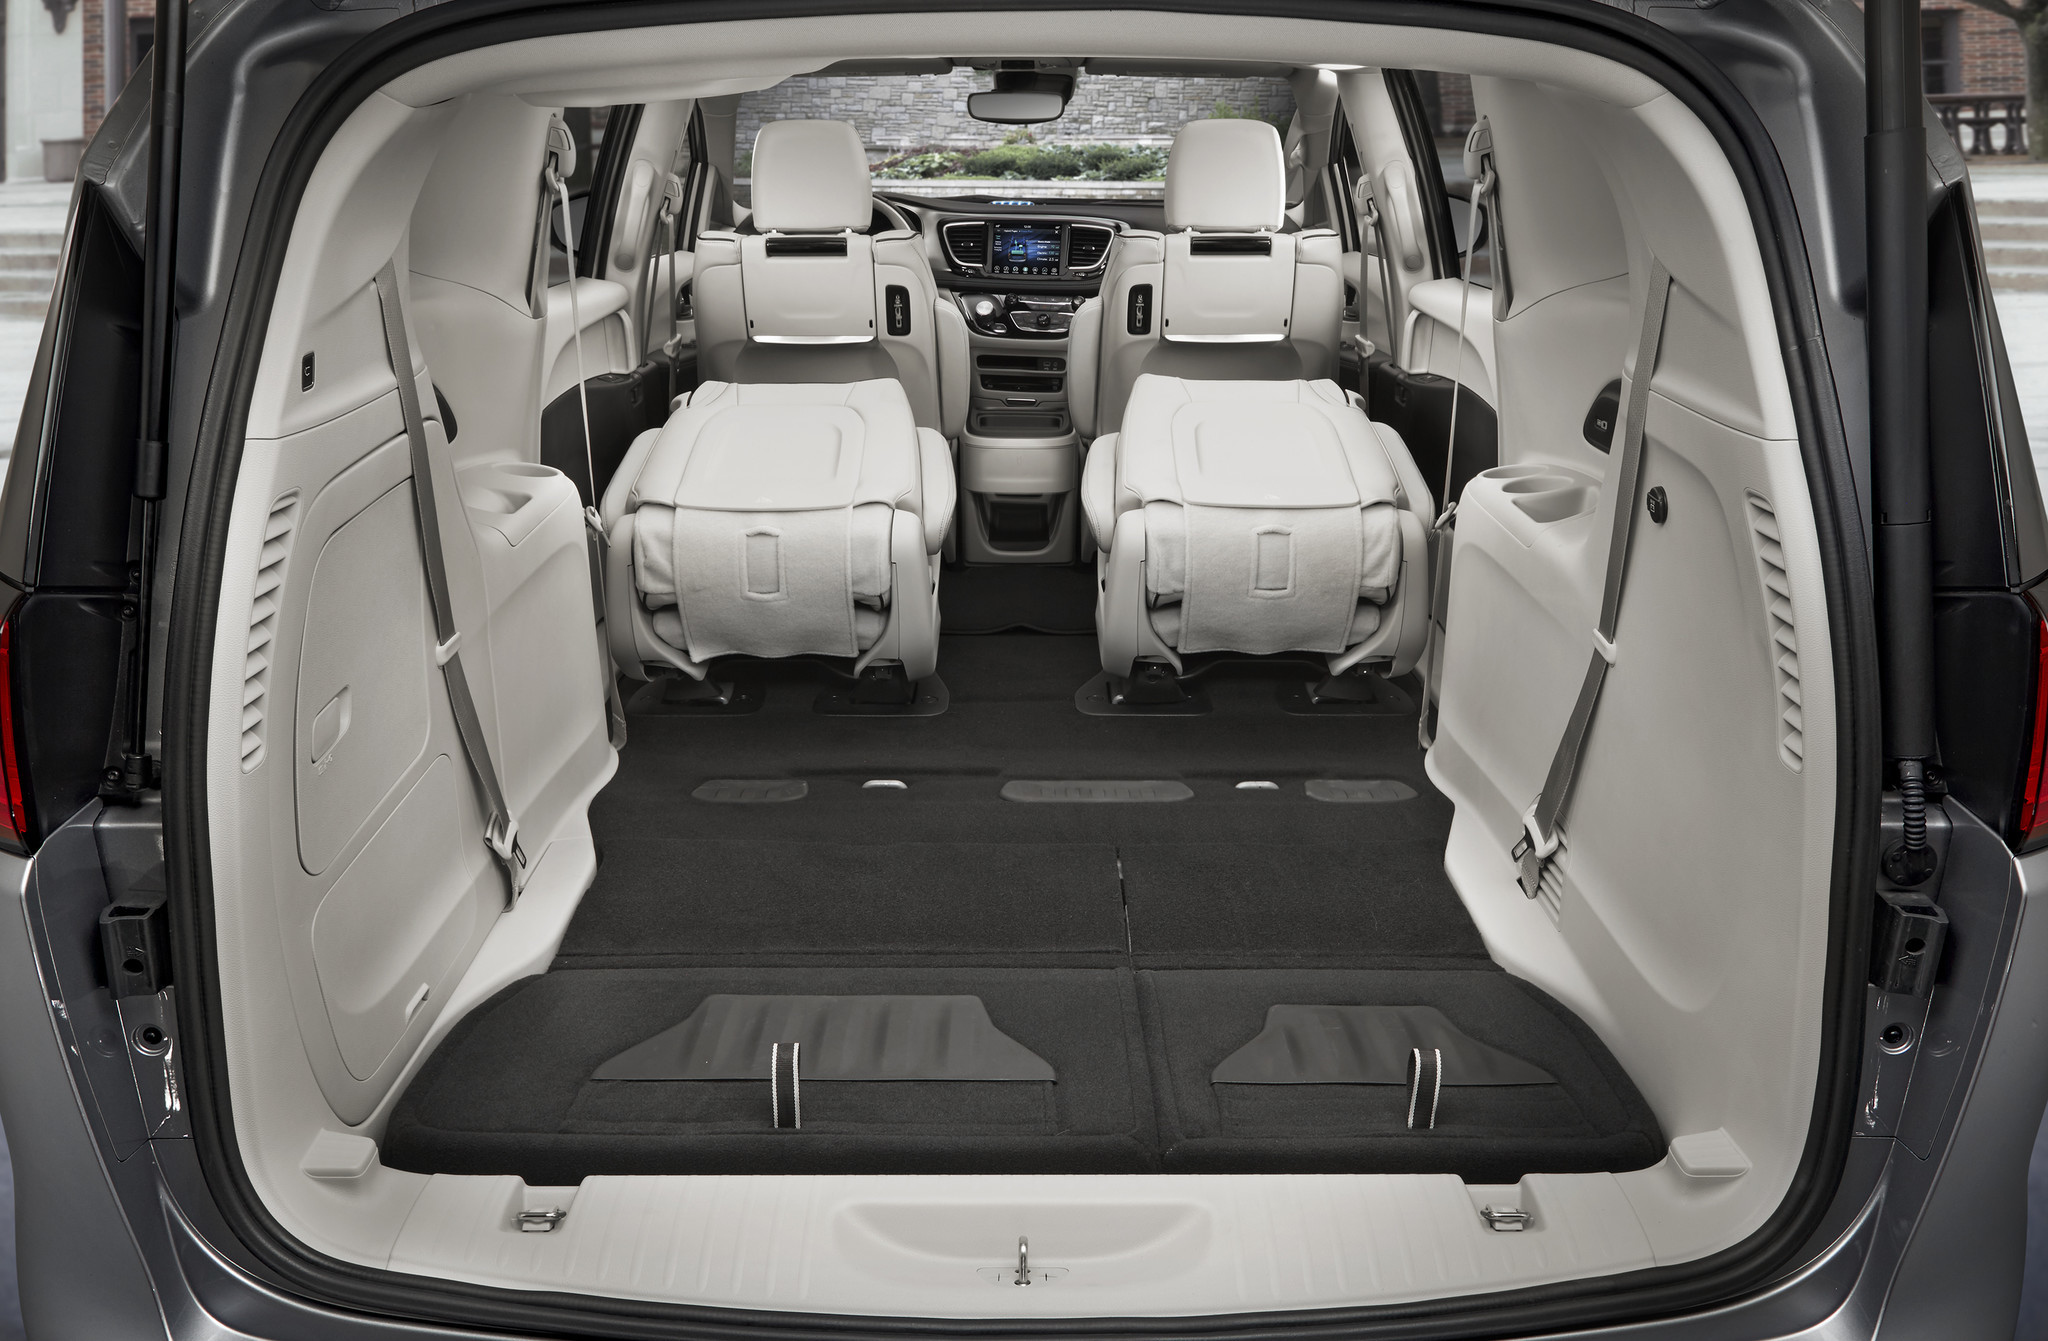 Seats fold flat and disappear to create extra storage space in the Pacifica.